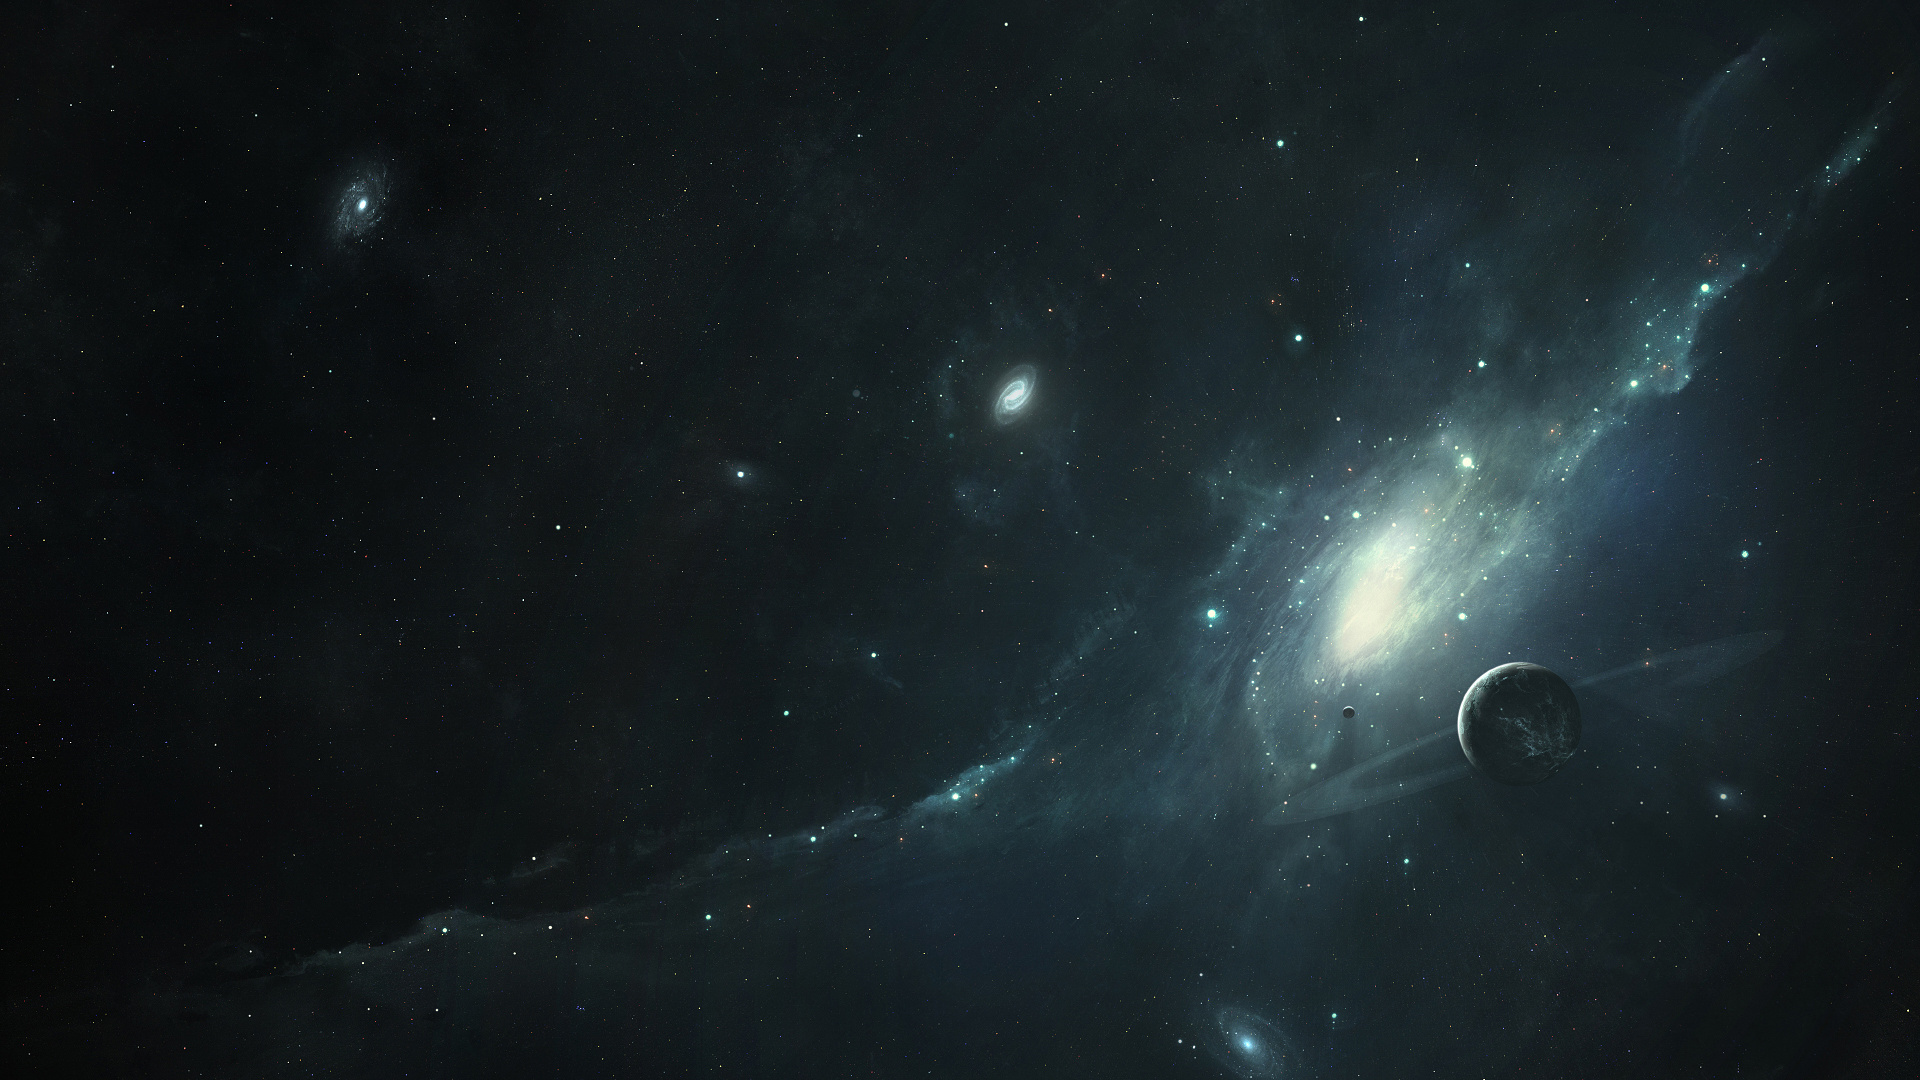 Dark universe 30104 1920x1080 px for Retro outer space